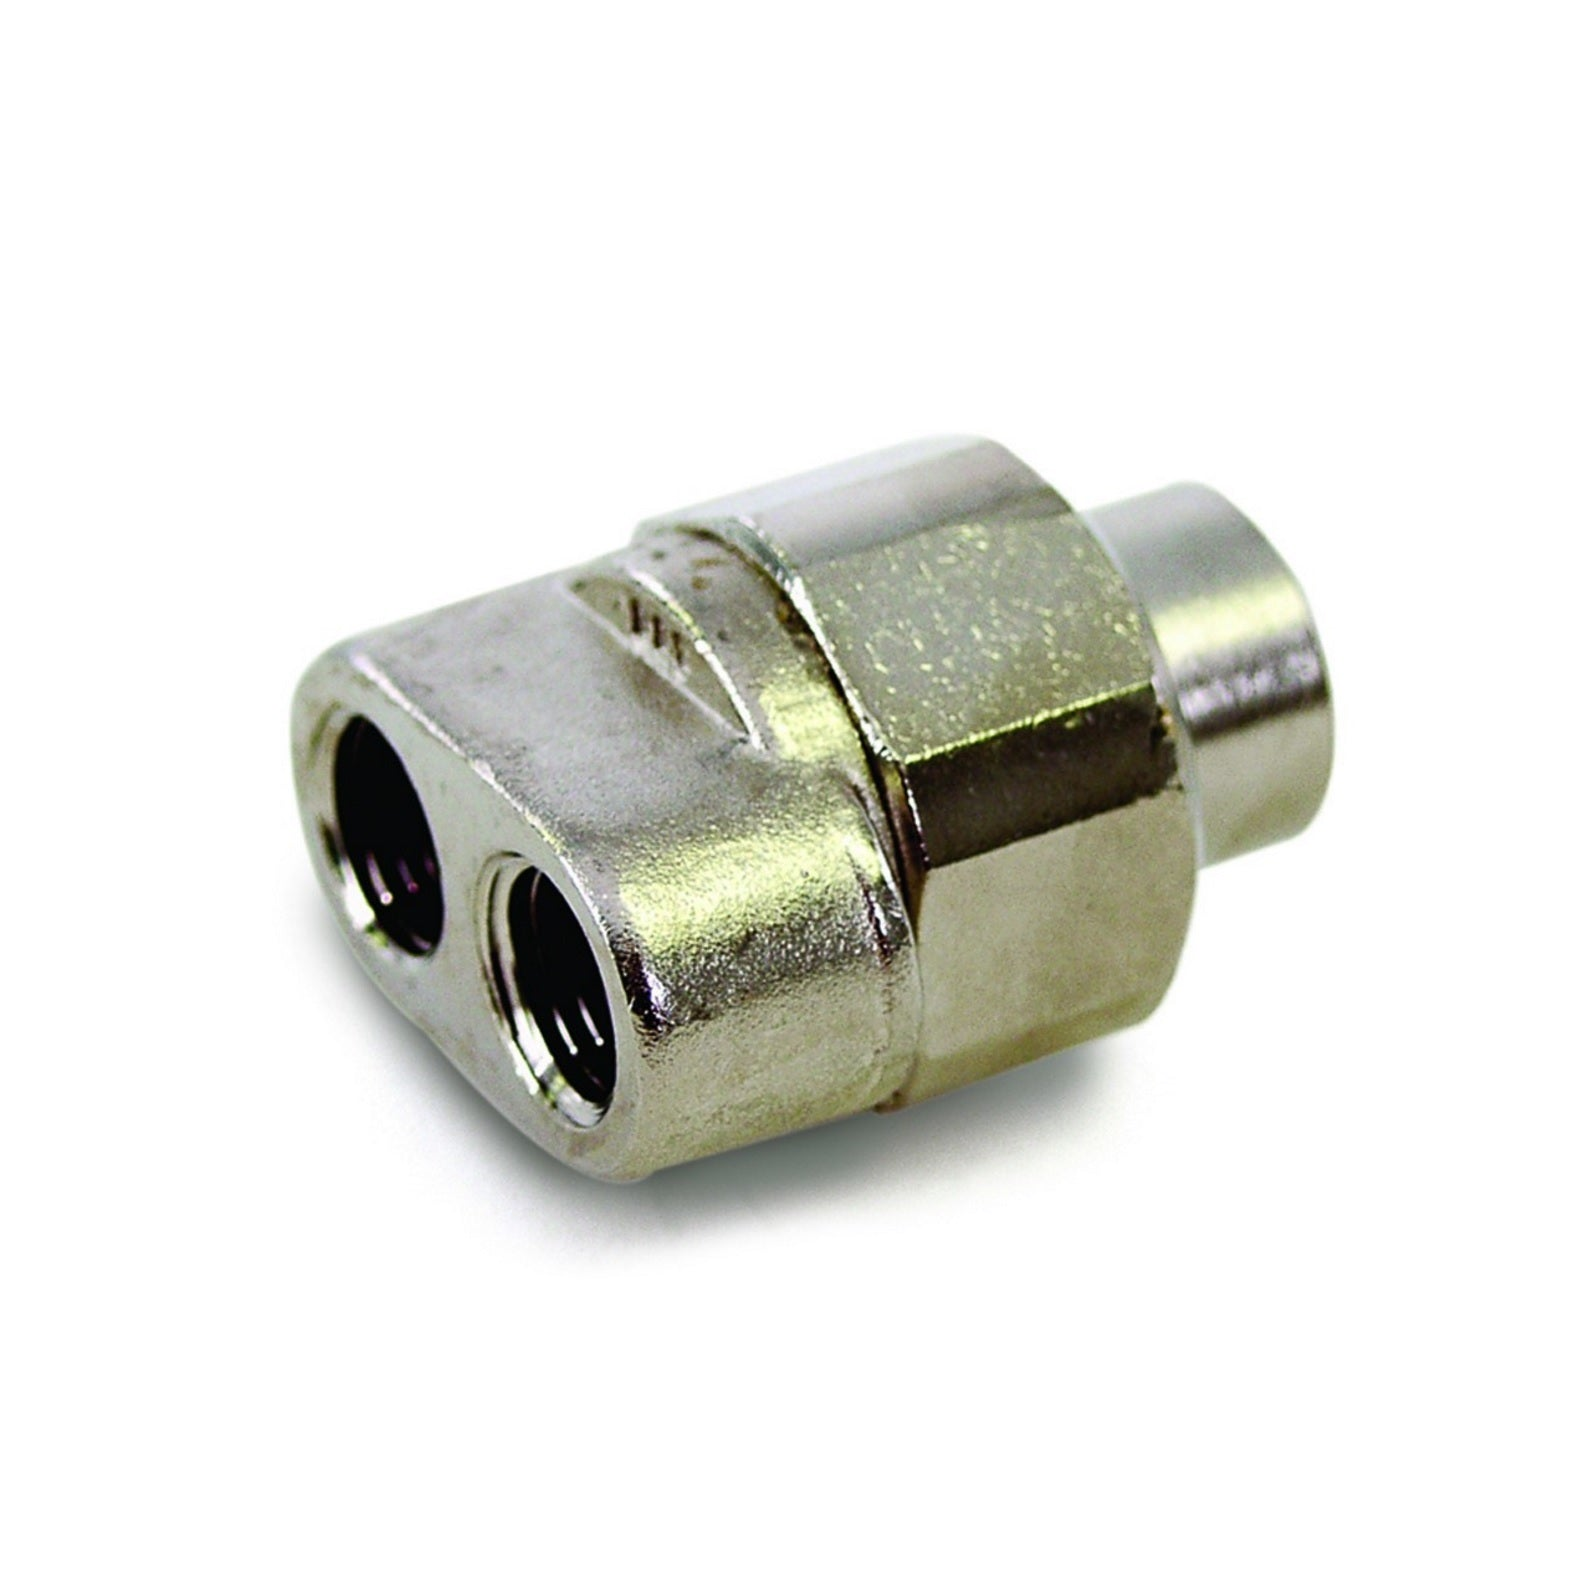 "PA ""Roll-Over"" Nozzle Holder 3200psi"